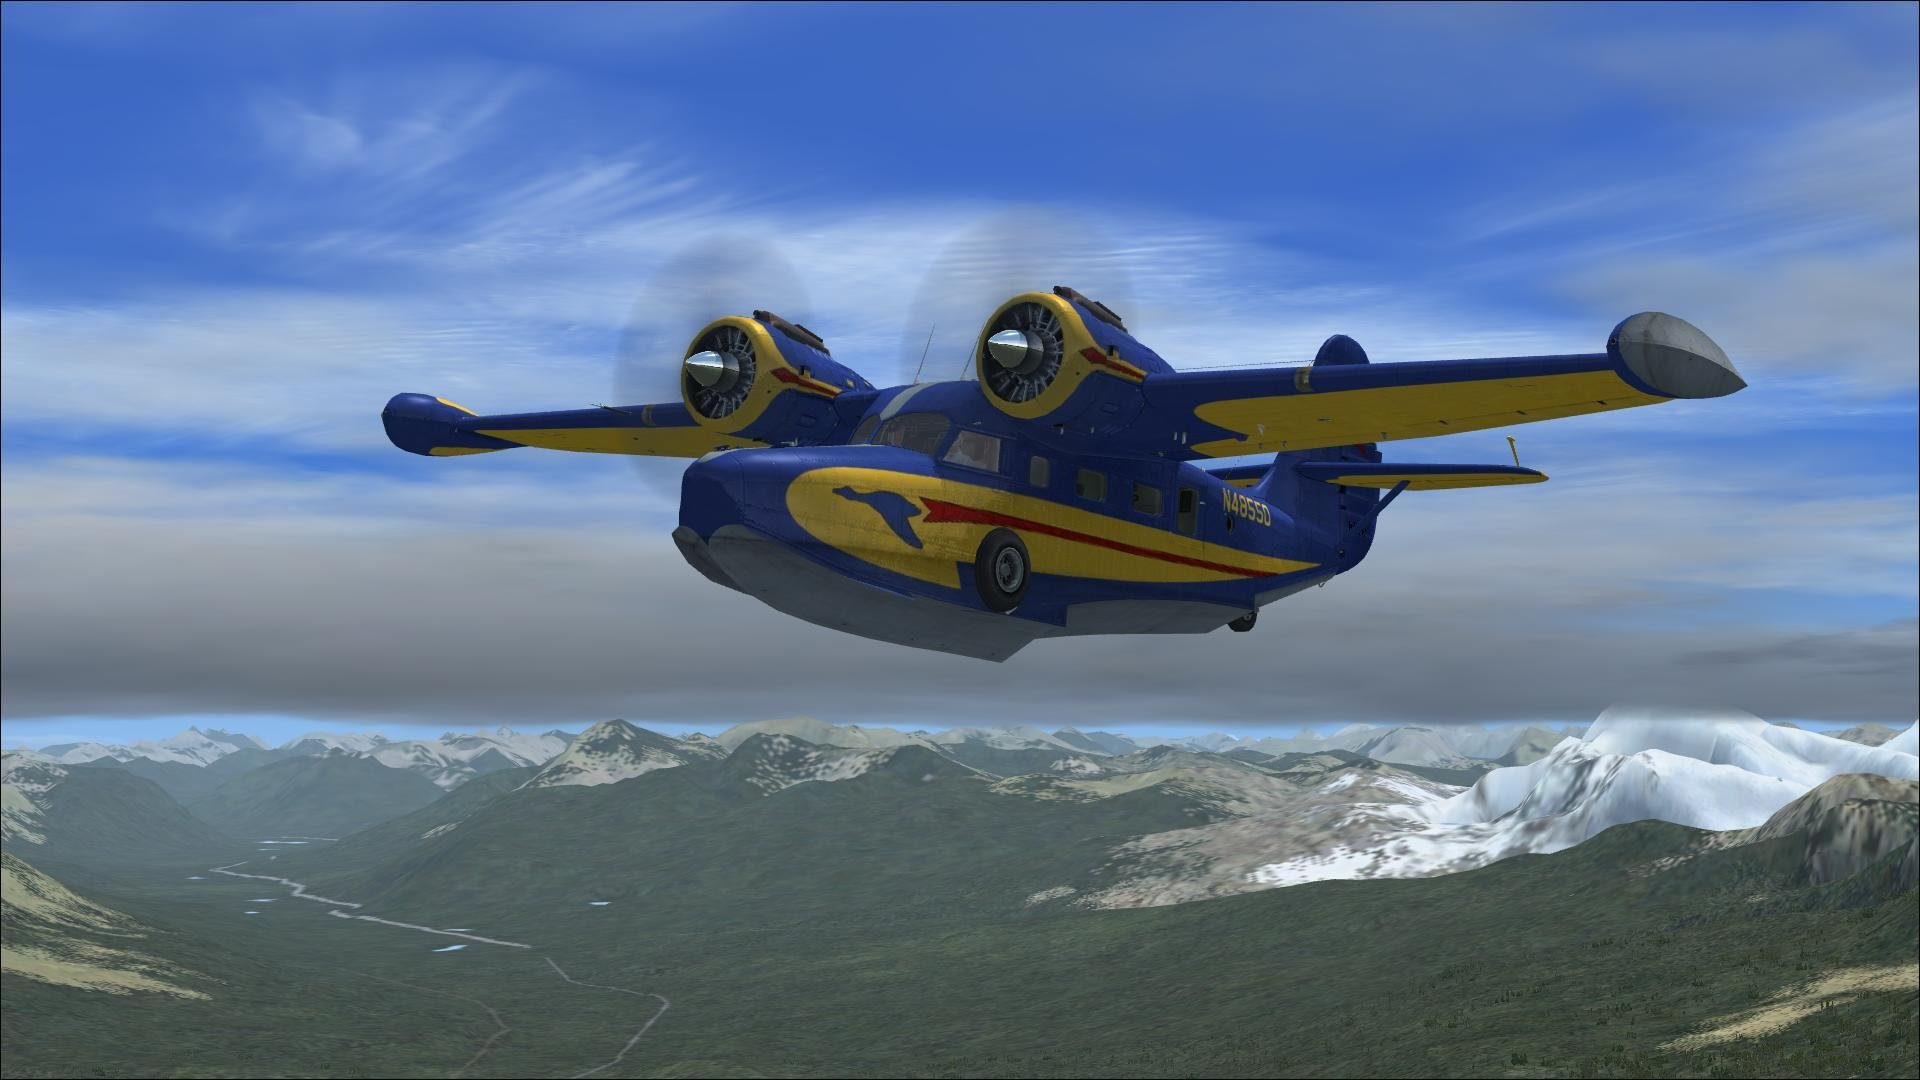 1920x1080 Grumman Goose FSX Wallpaper Download 1920x1080